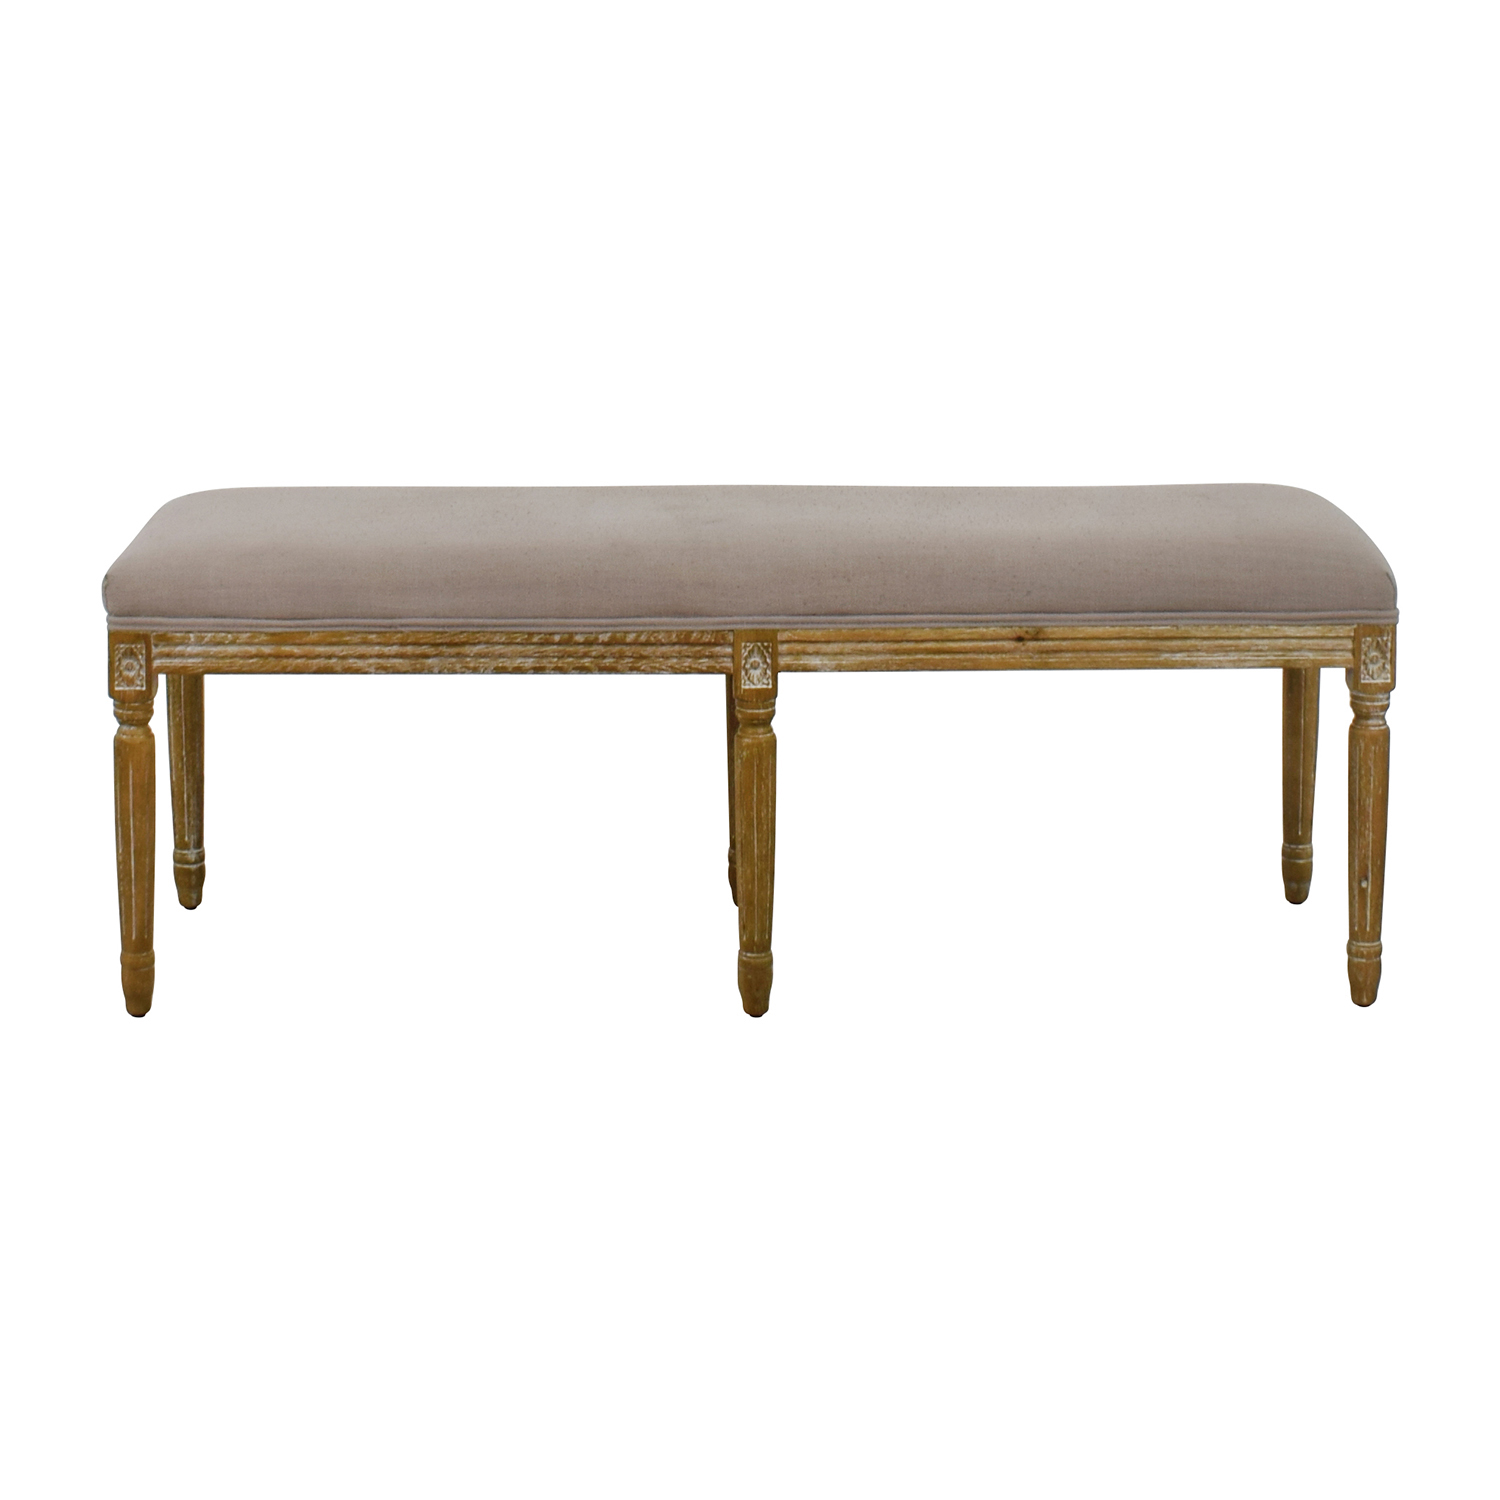 Baxton Studio Baxton Studio Clairette Wood Traditional French Bench discount